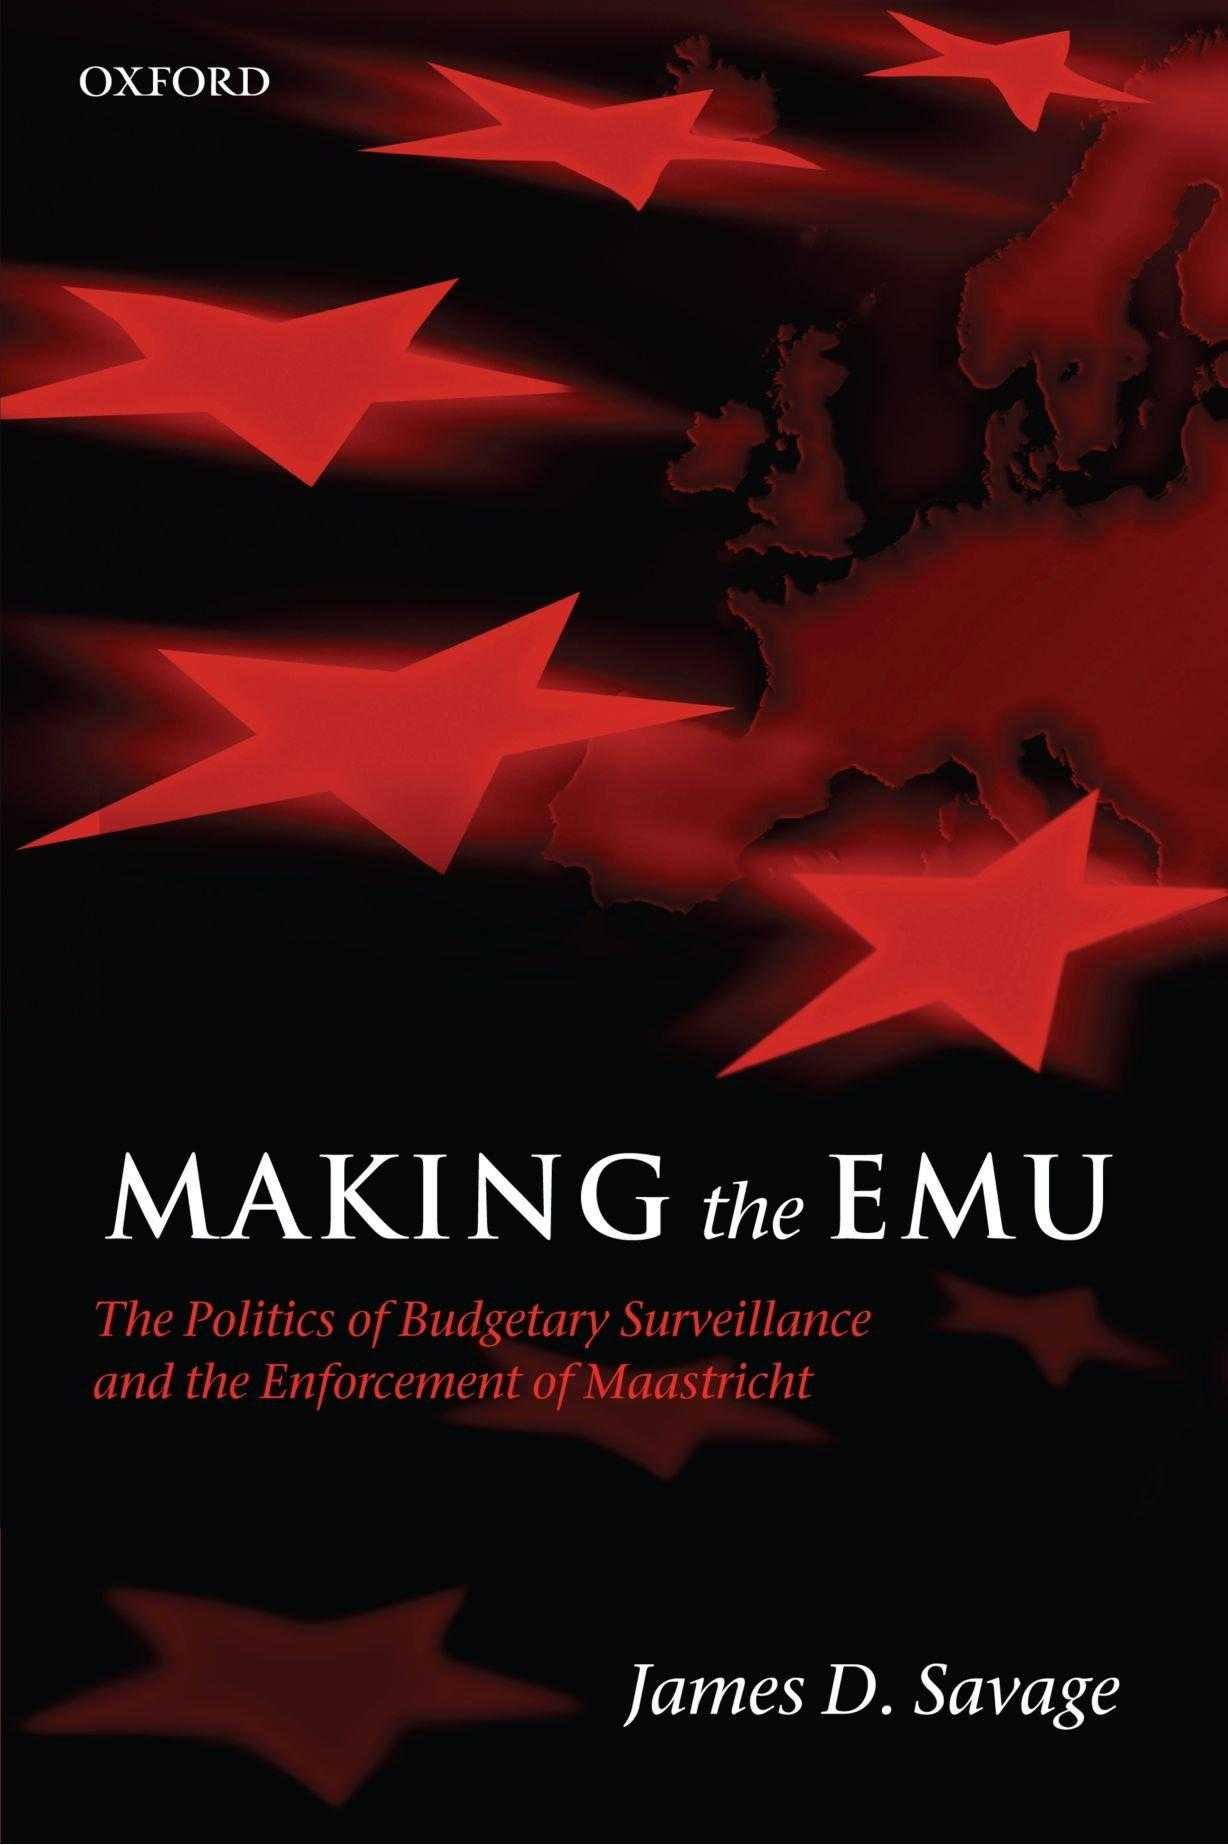 Making the Emu: The Politics of Budgetary Surveillance and the Enforcement of., Savage, James D.